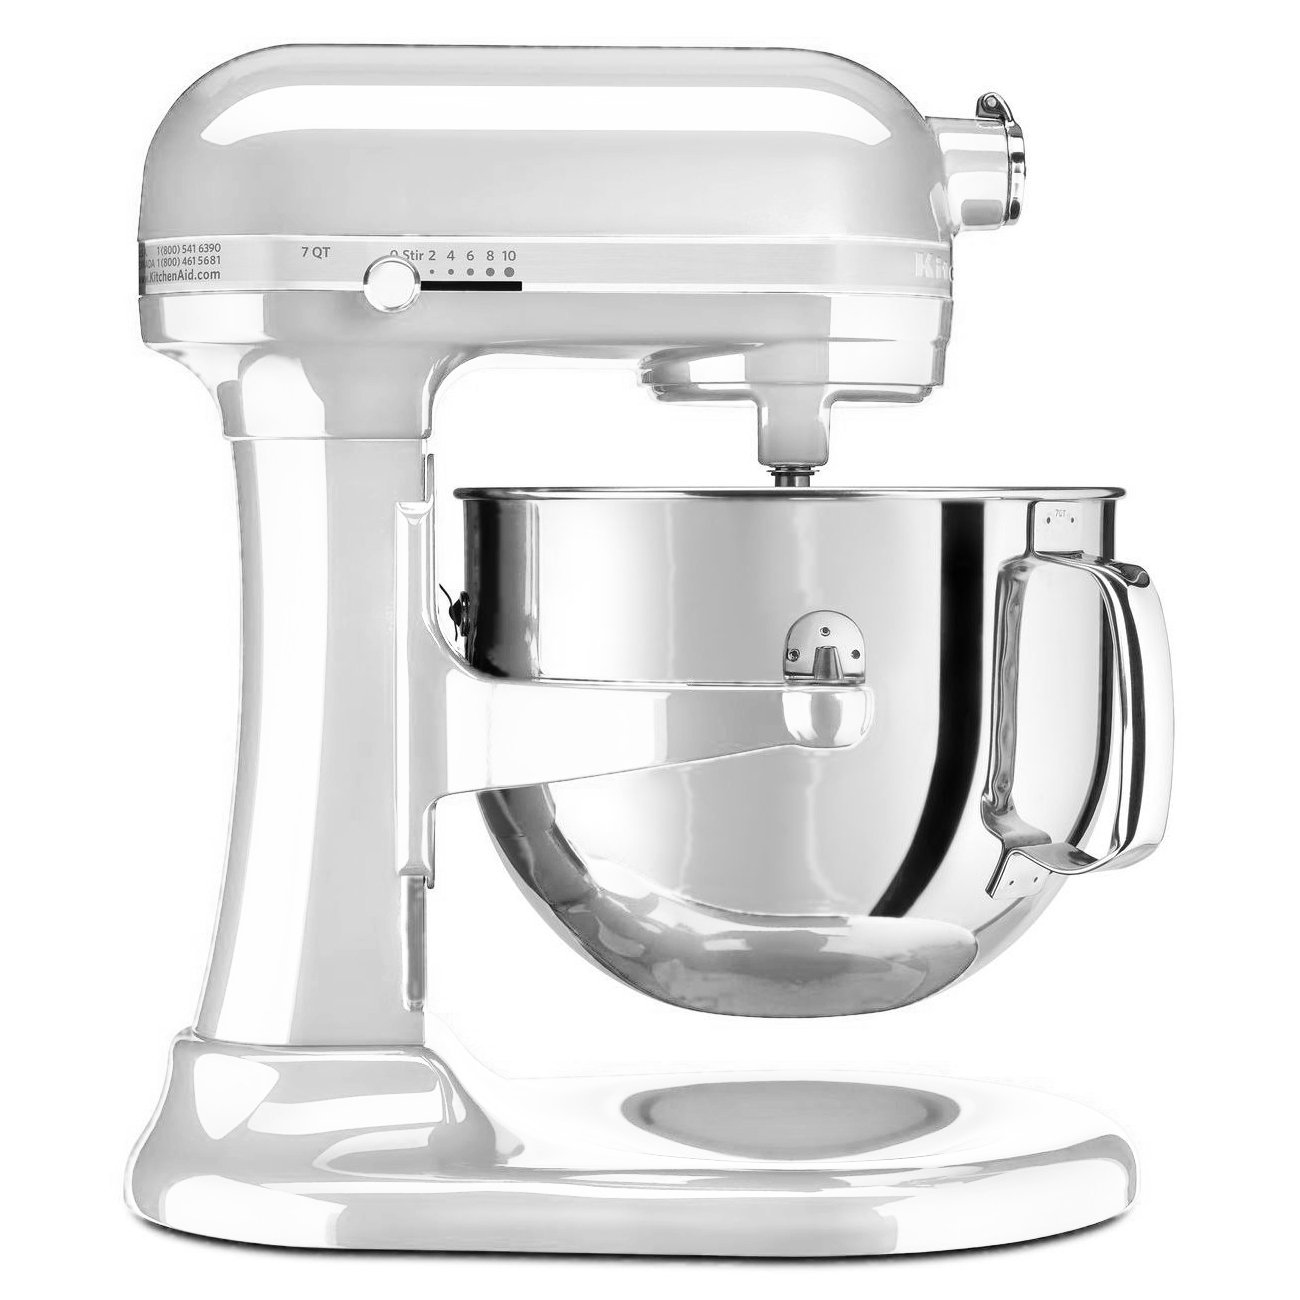 KitchenAid RRKSM7586PFP 7-Quart Pro Line Stand Mixer Frosted Pearl White (CERTIFIED REFURBISHED)